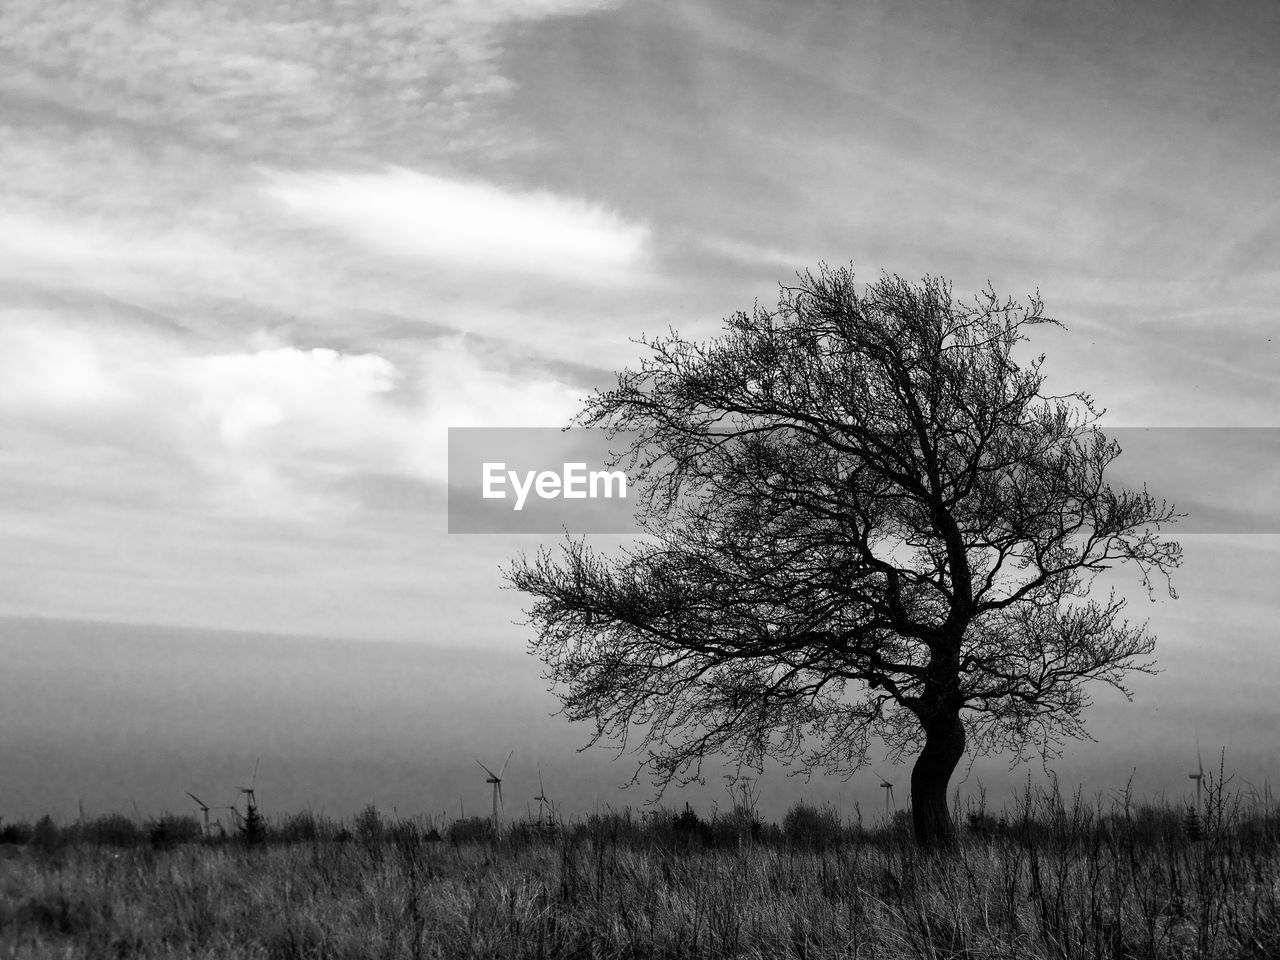 tree, field, plant, tranquility, environment, sky, beauty in nature, land, landscape, tranquil scene, bare tree, cloud - sky, scenics - nature, nature, non-urban scene, no people, solitude, horizon, horizon over land, grass, outdoors, isolated